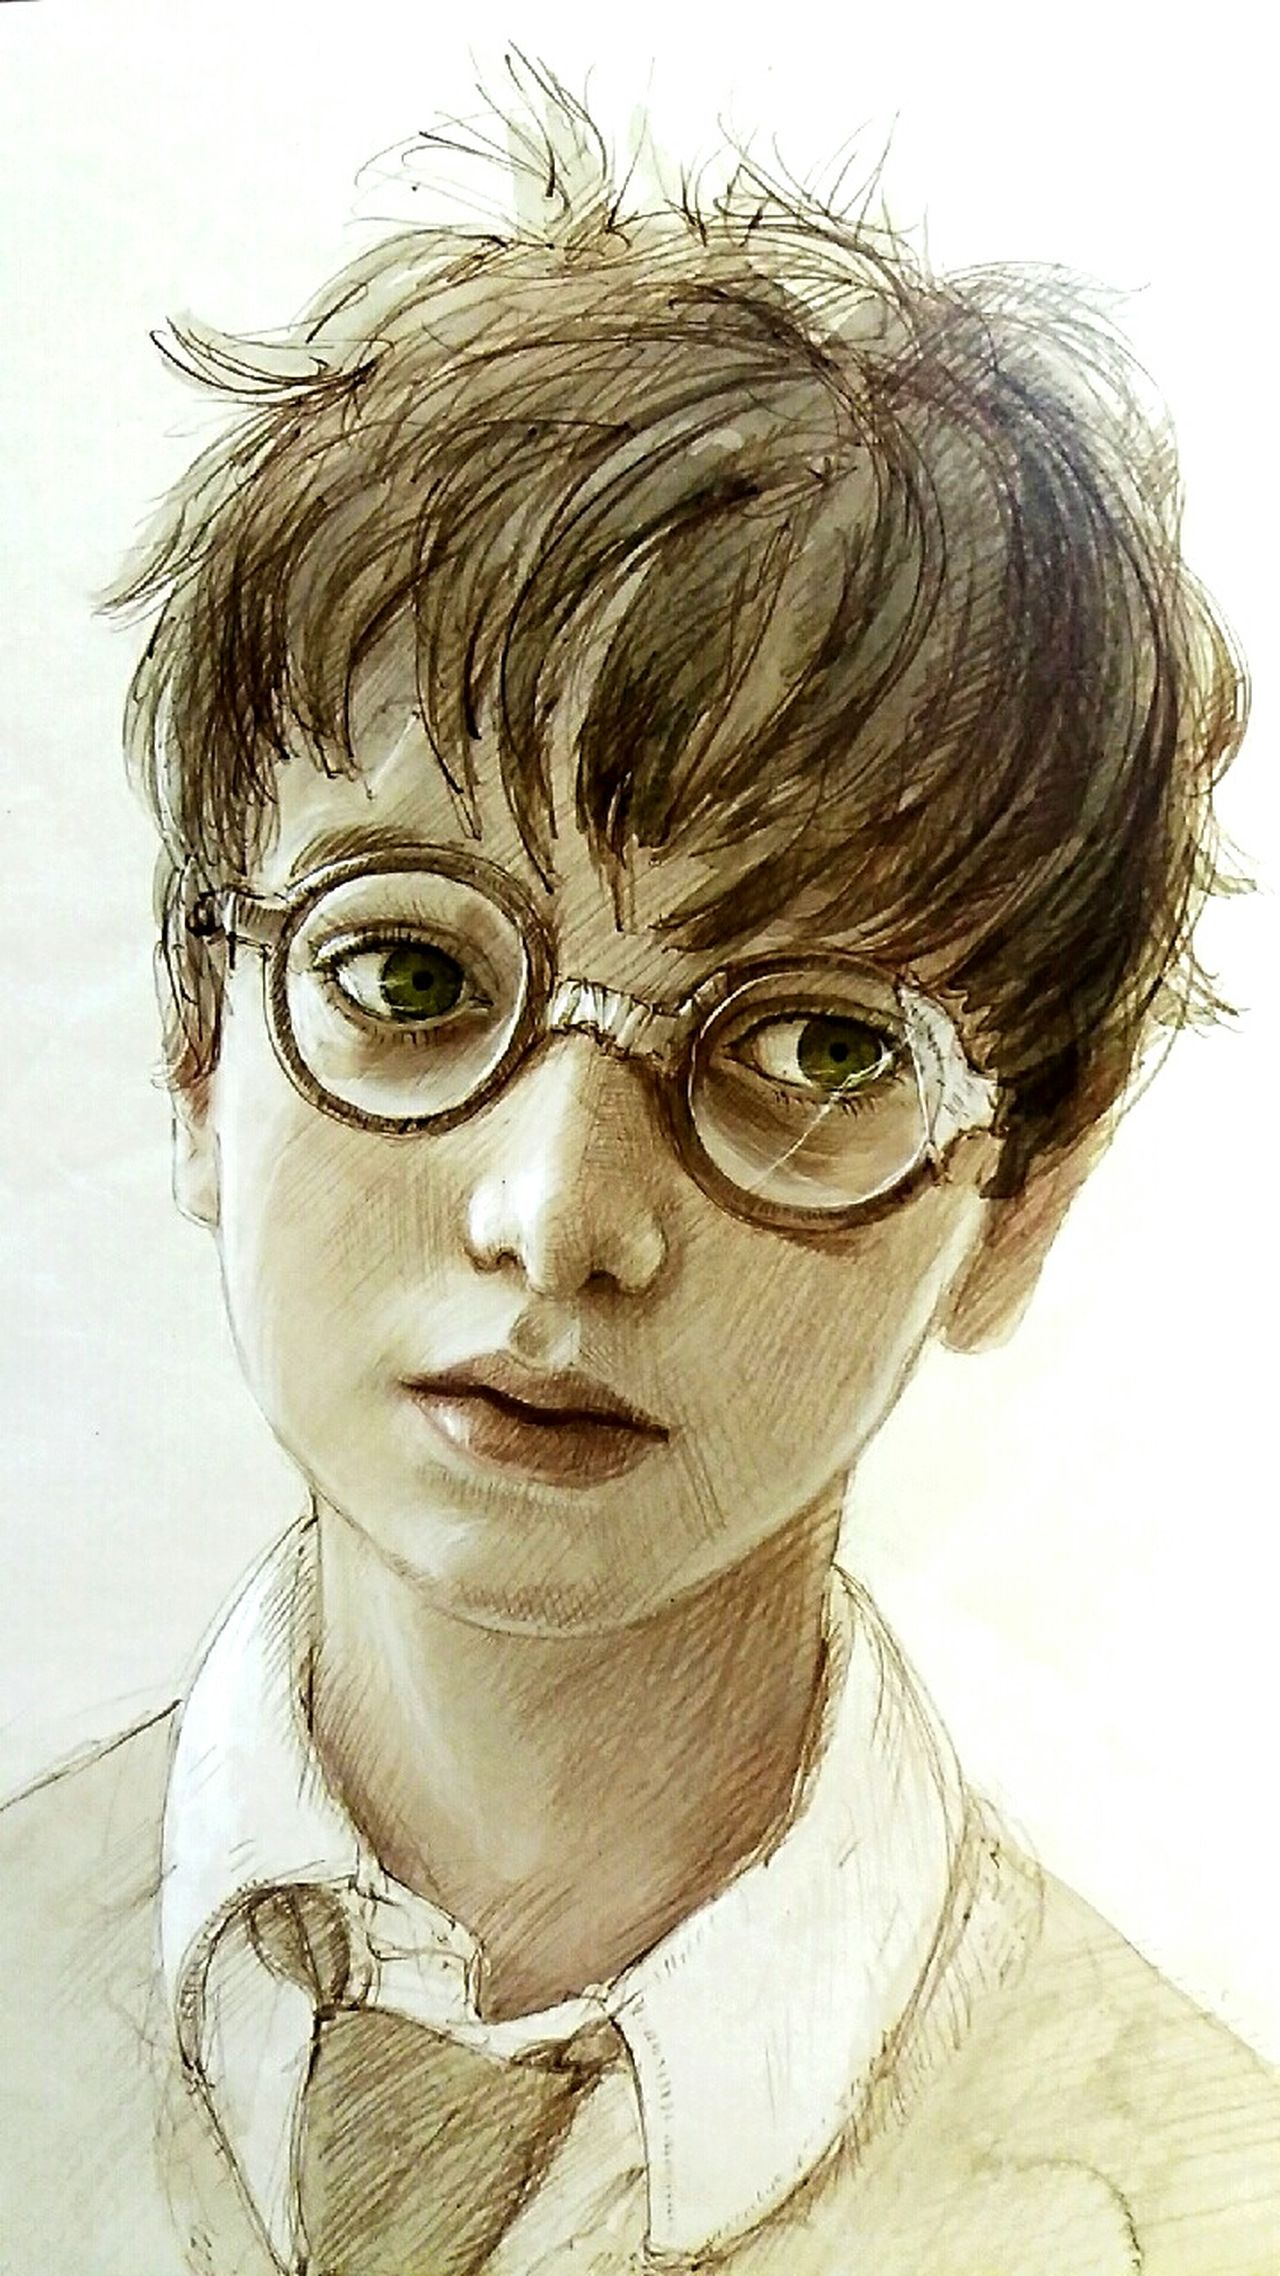 One Person People Harry Potter HP Portrait J.k. Rowling Philosophical Stone Book Books ♥ Harry Potter ❤ Harry Potter ⚡ Looking At Camera Young Adult